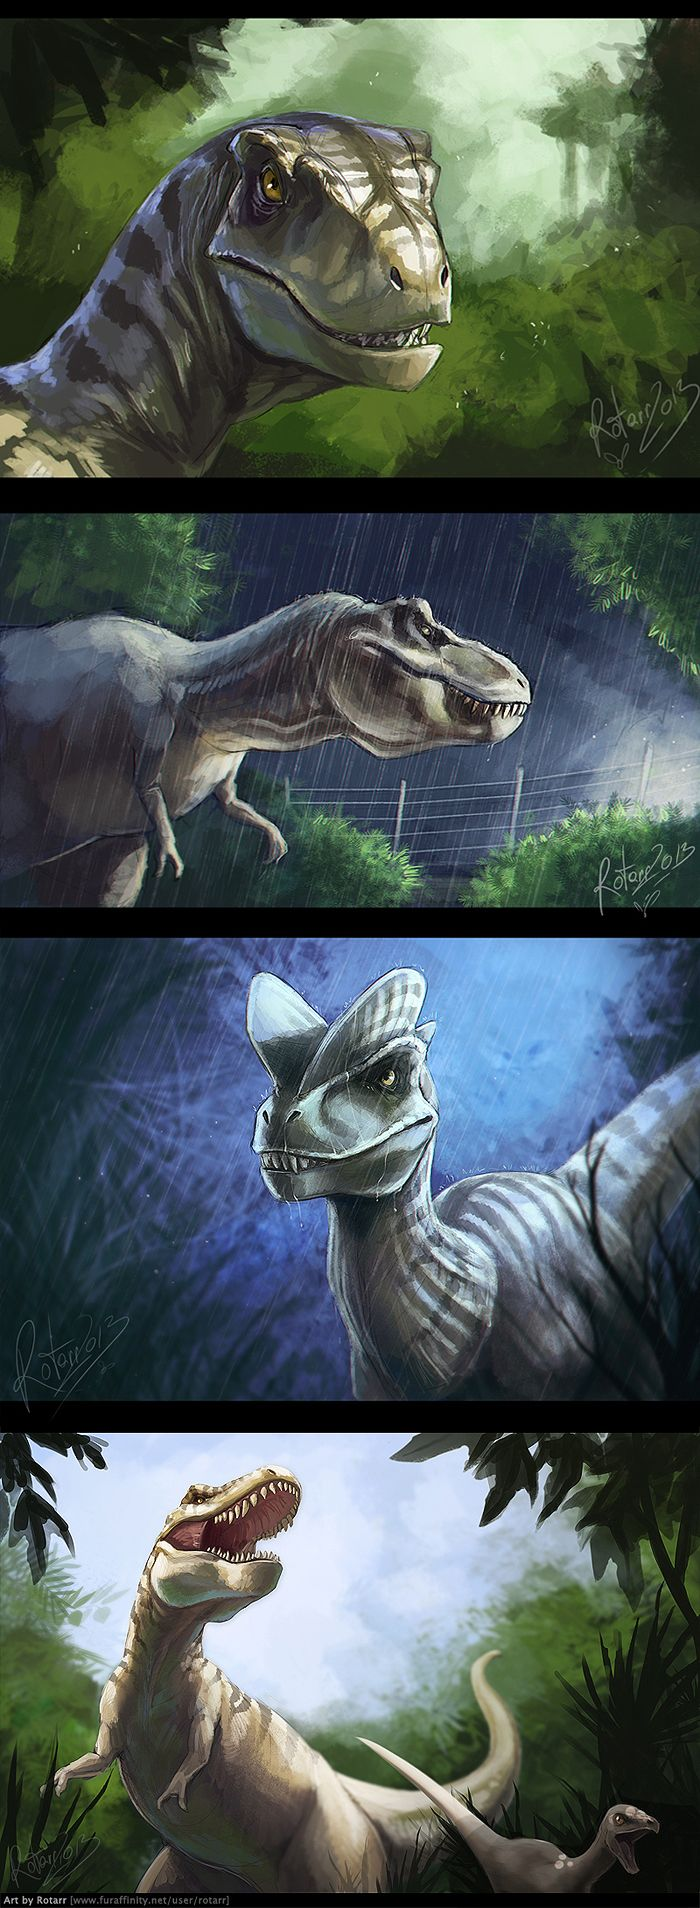 Jurassic Park Dinosaurs by FlyQueen